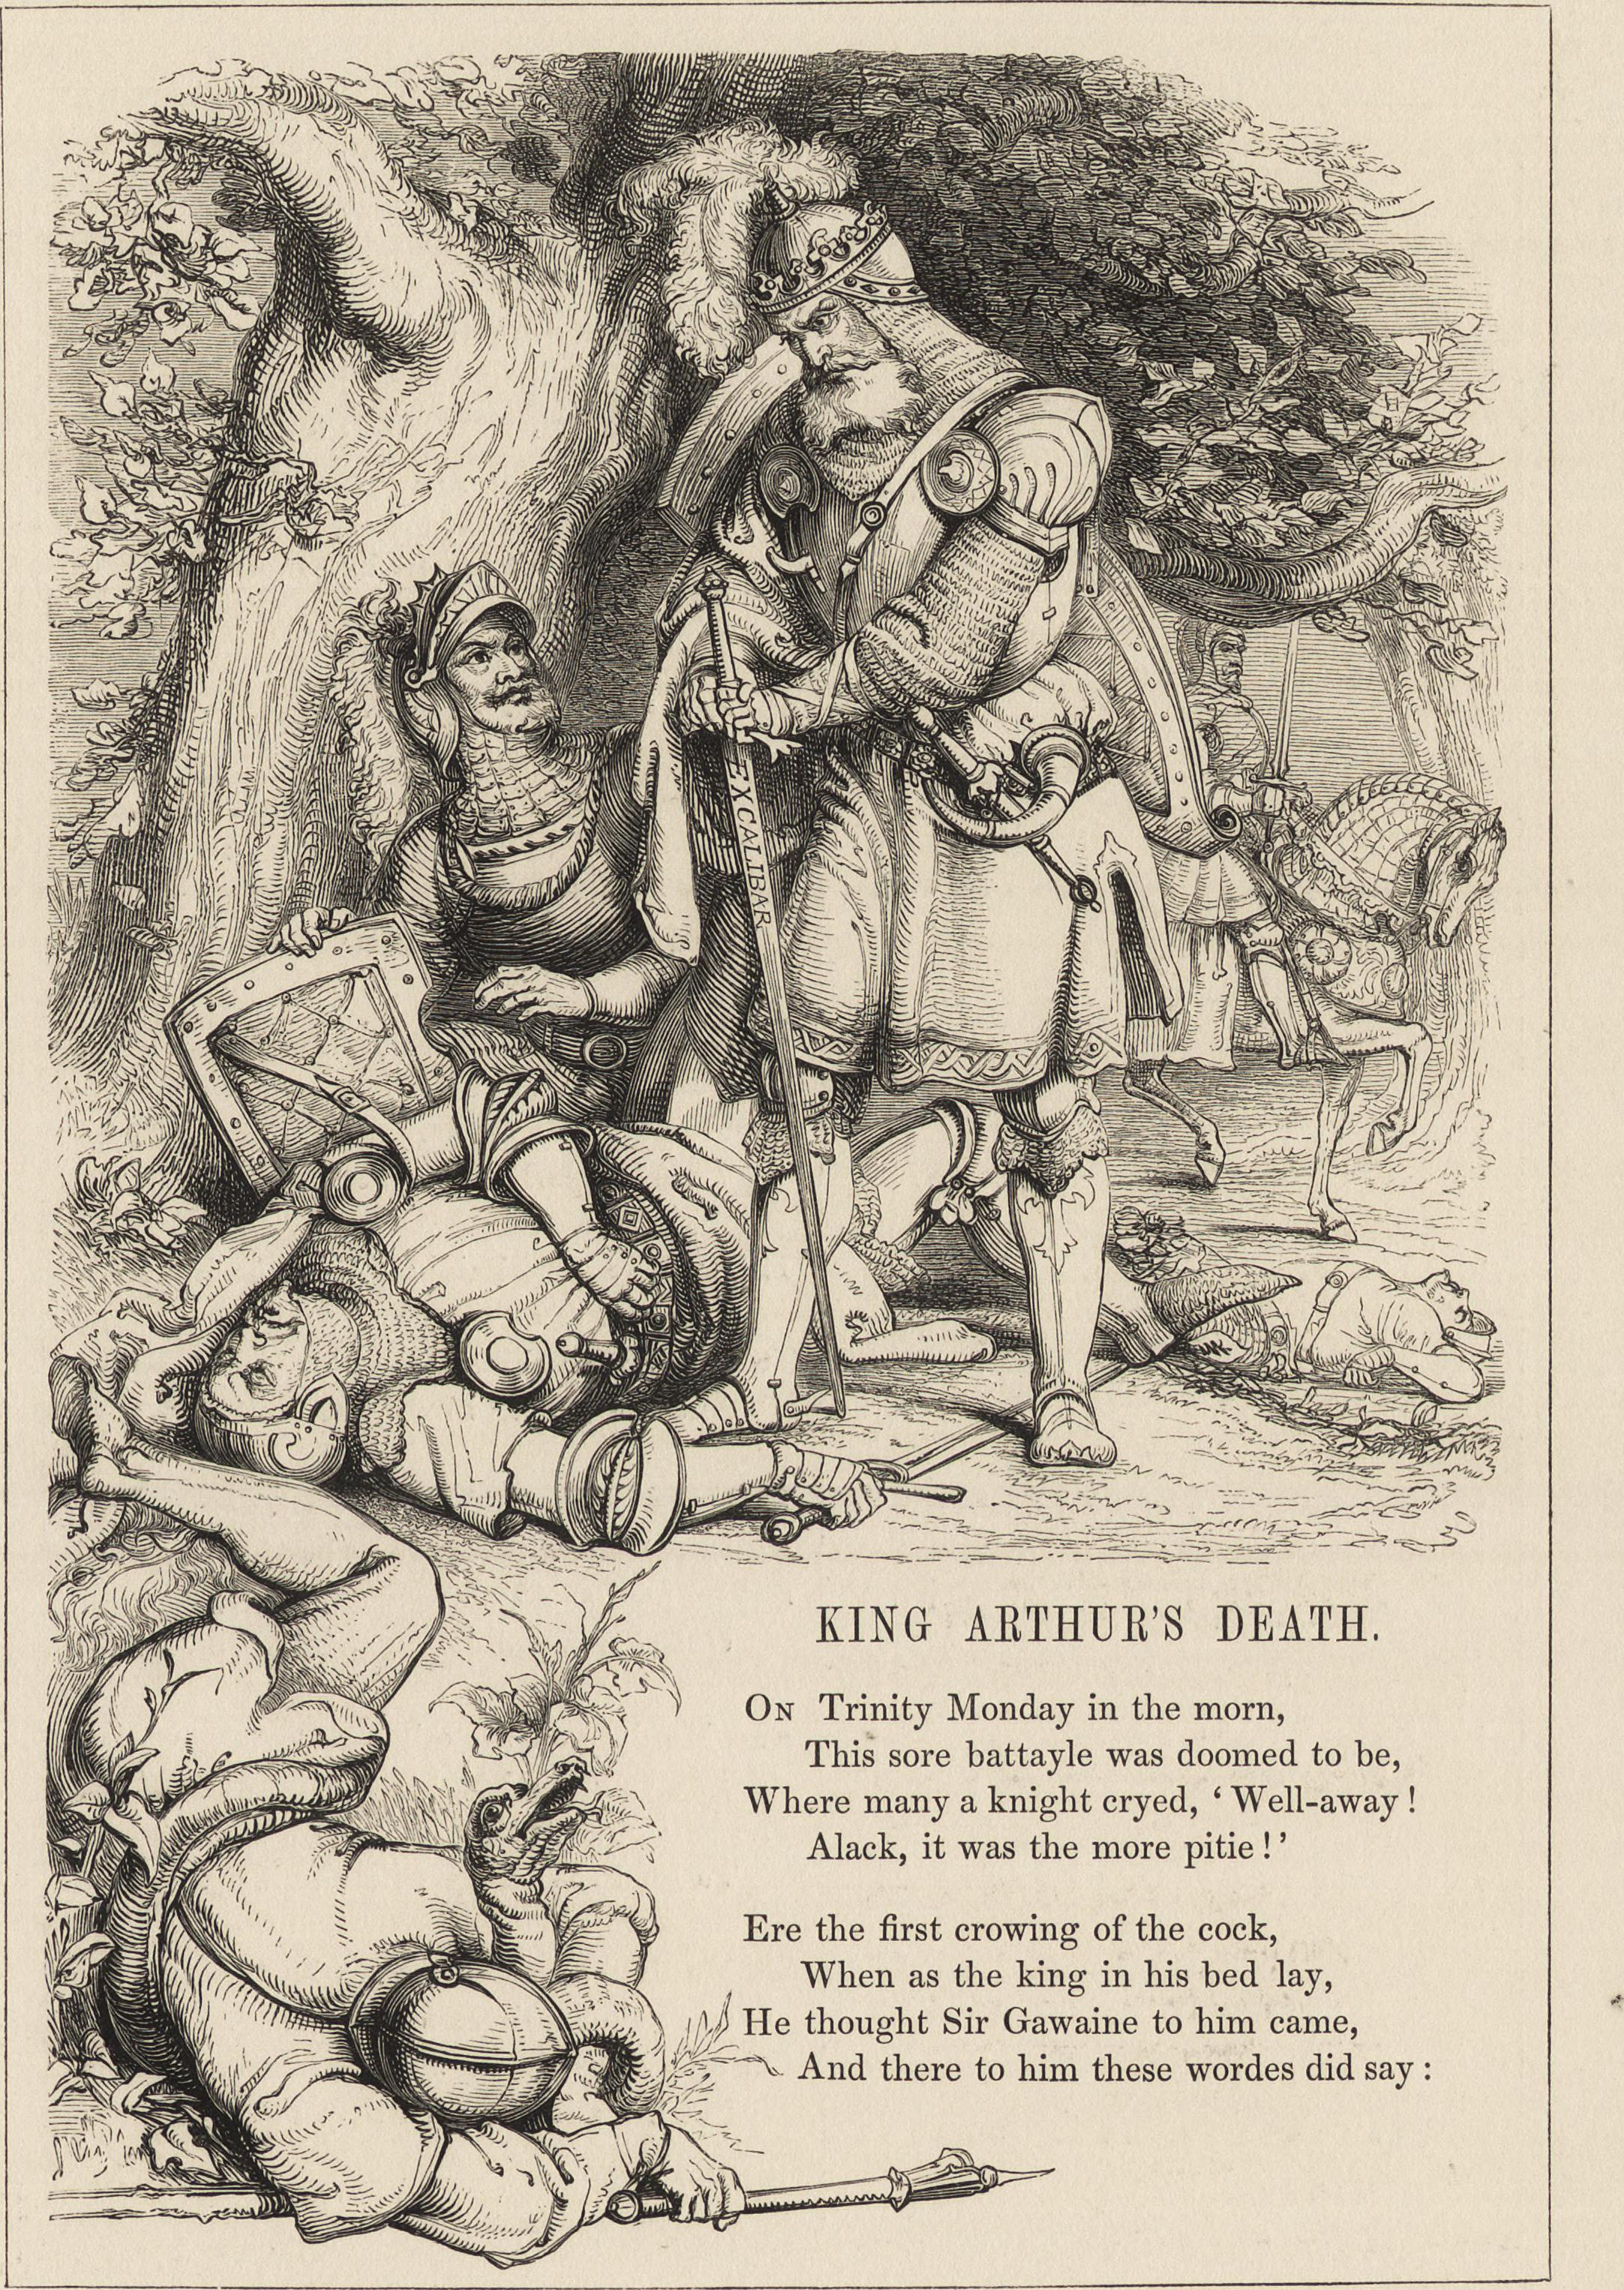 The extermination of the British. 1842 year